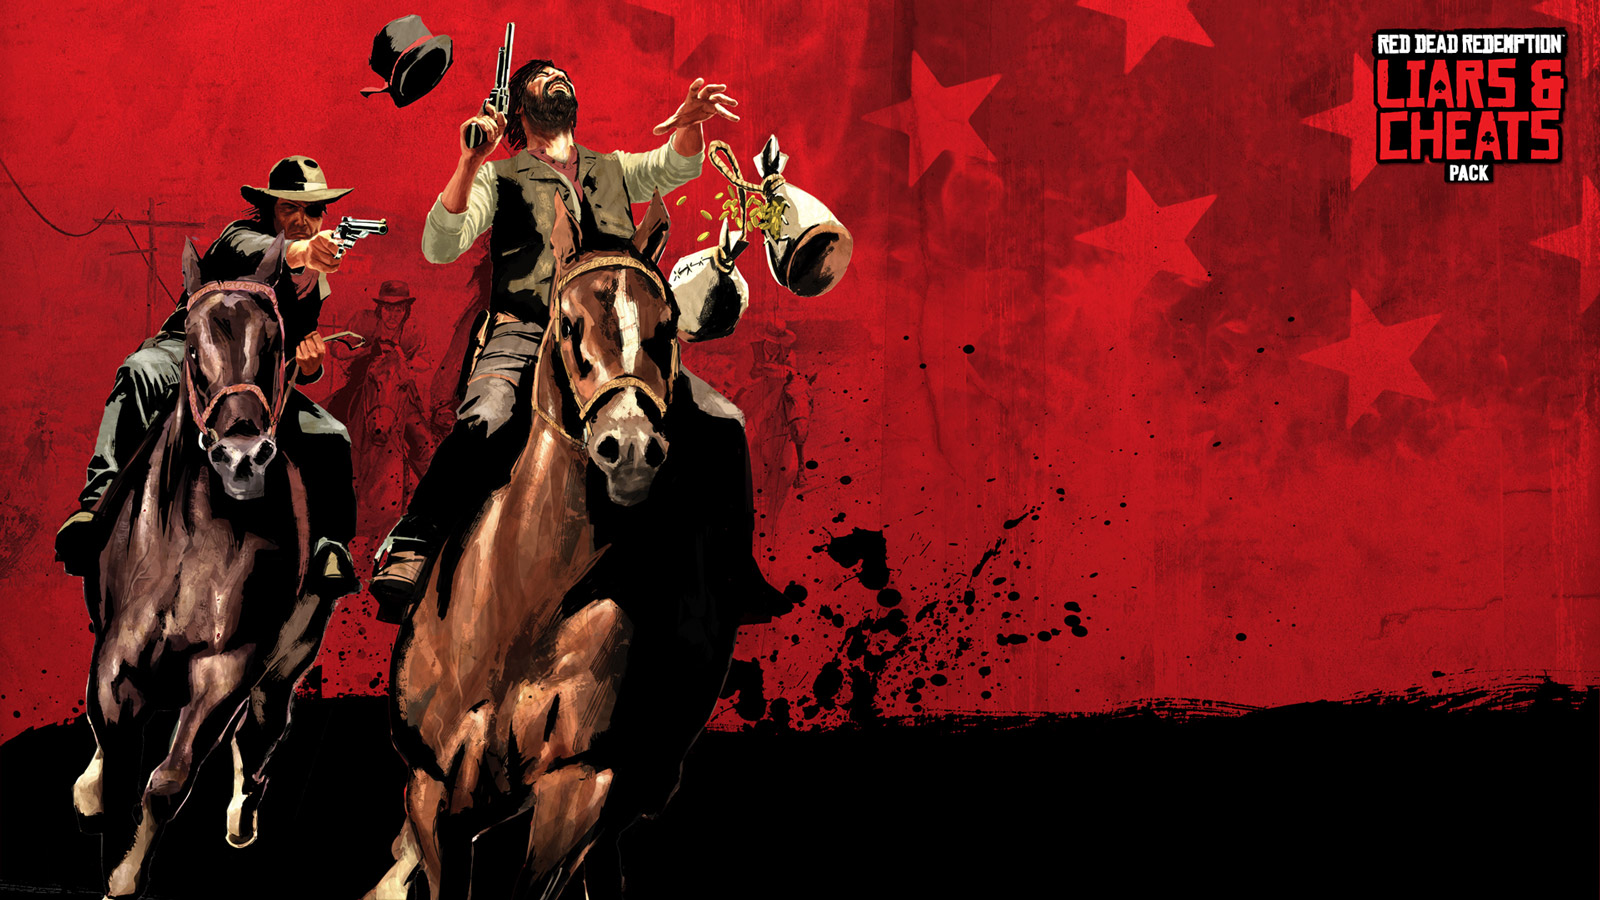 Free Red Dead Redemption Wallpaper in 1600x900